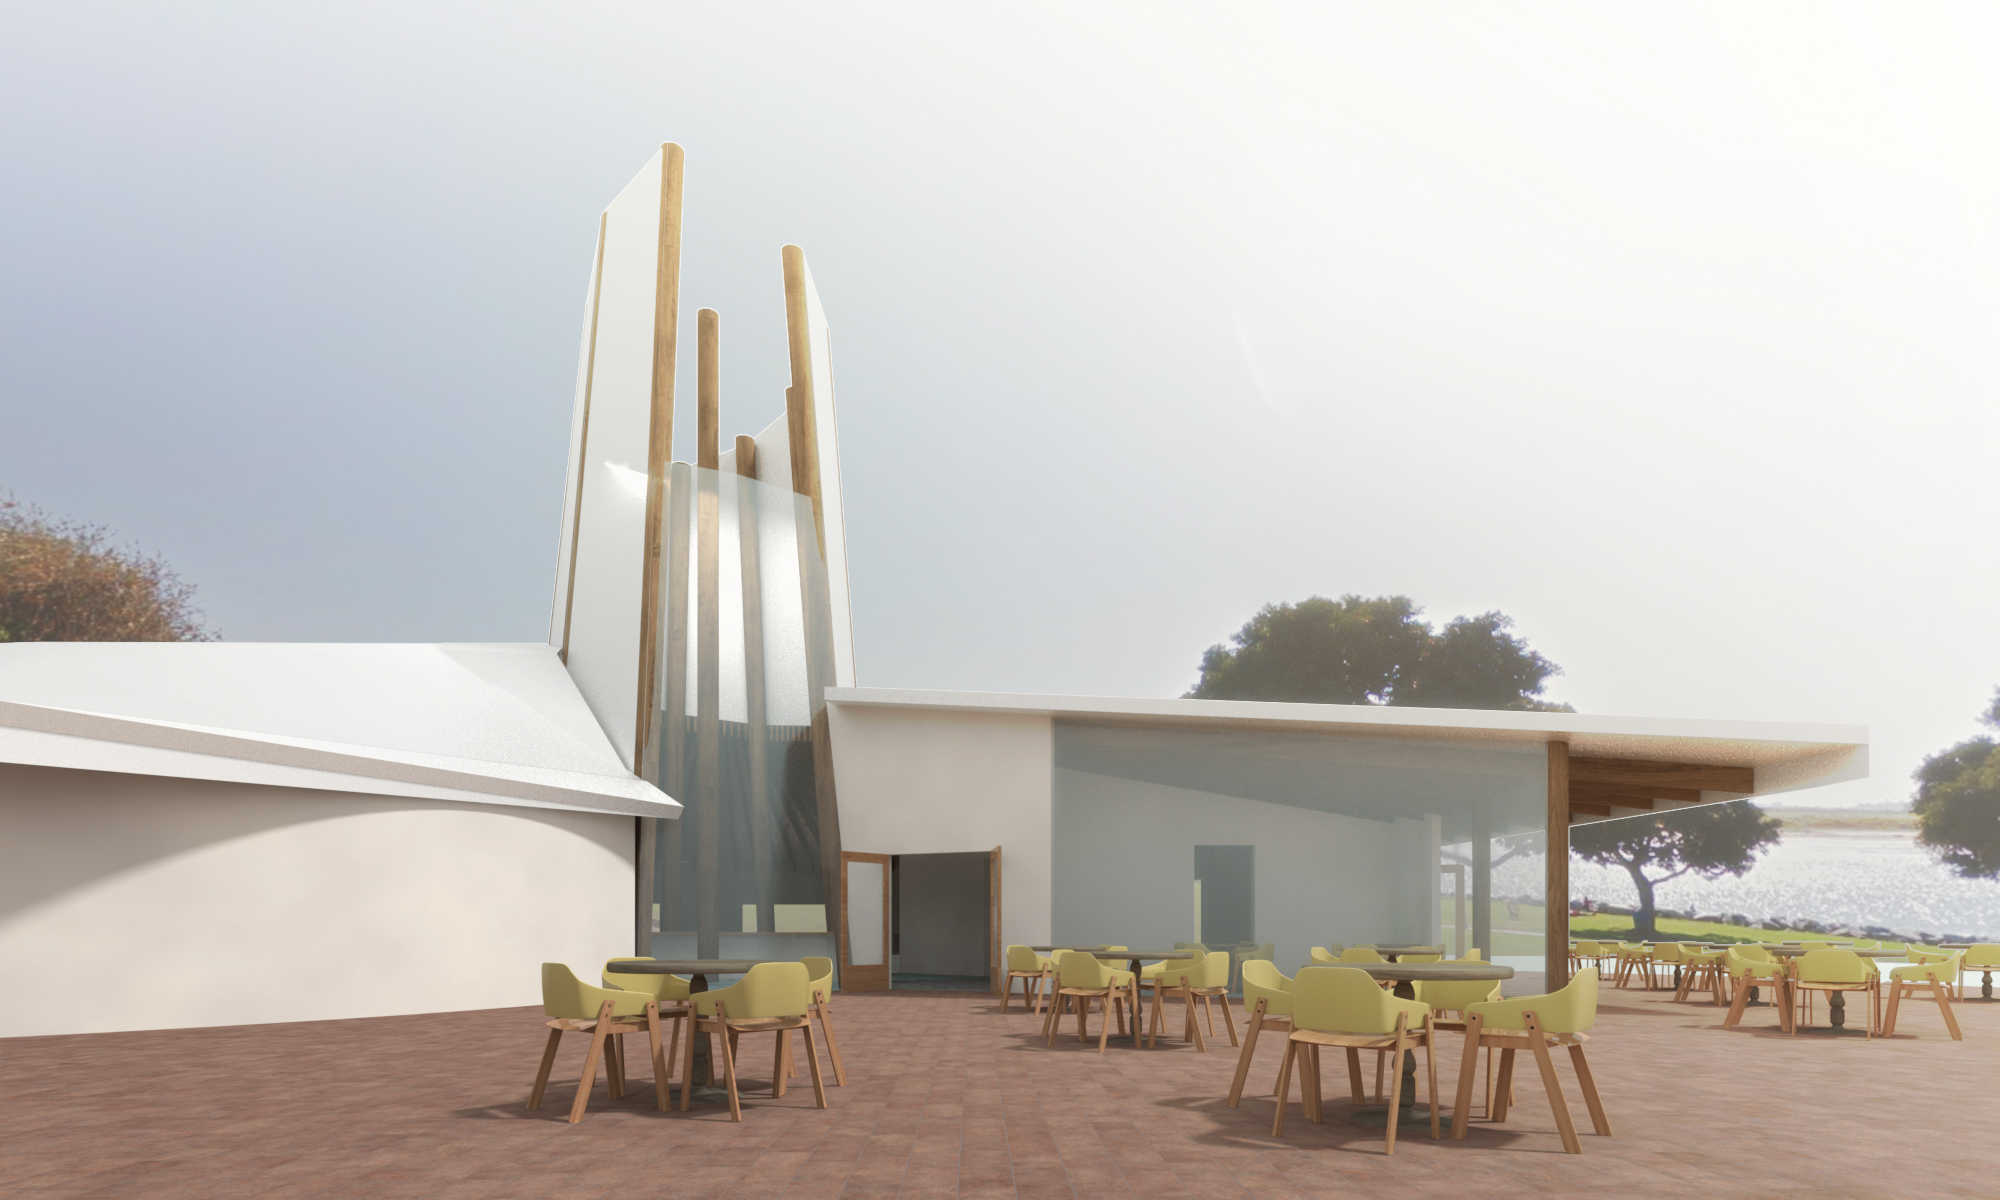 More Details Emerge About Mission Bay's New Waterfront Eatery